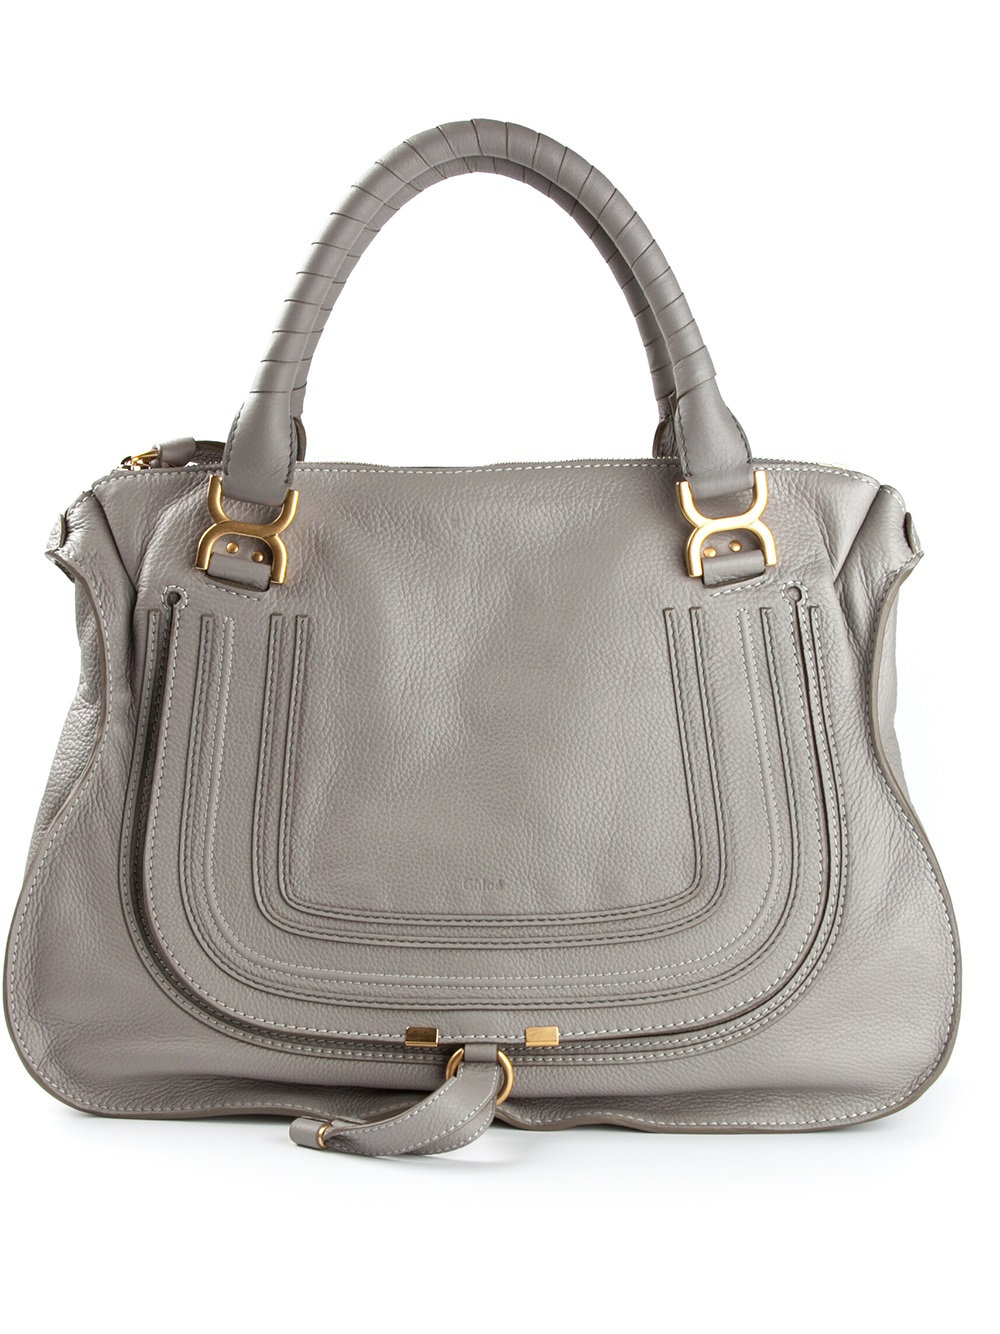 chloe look alike handbags - Chlo�� Large \u0026#39;marcie\u0026#39; Tote in Gray (grey) | Lyst